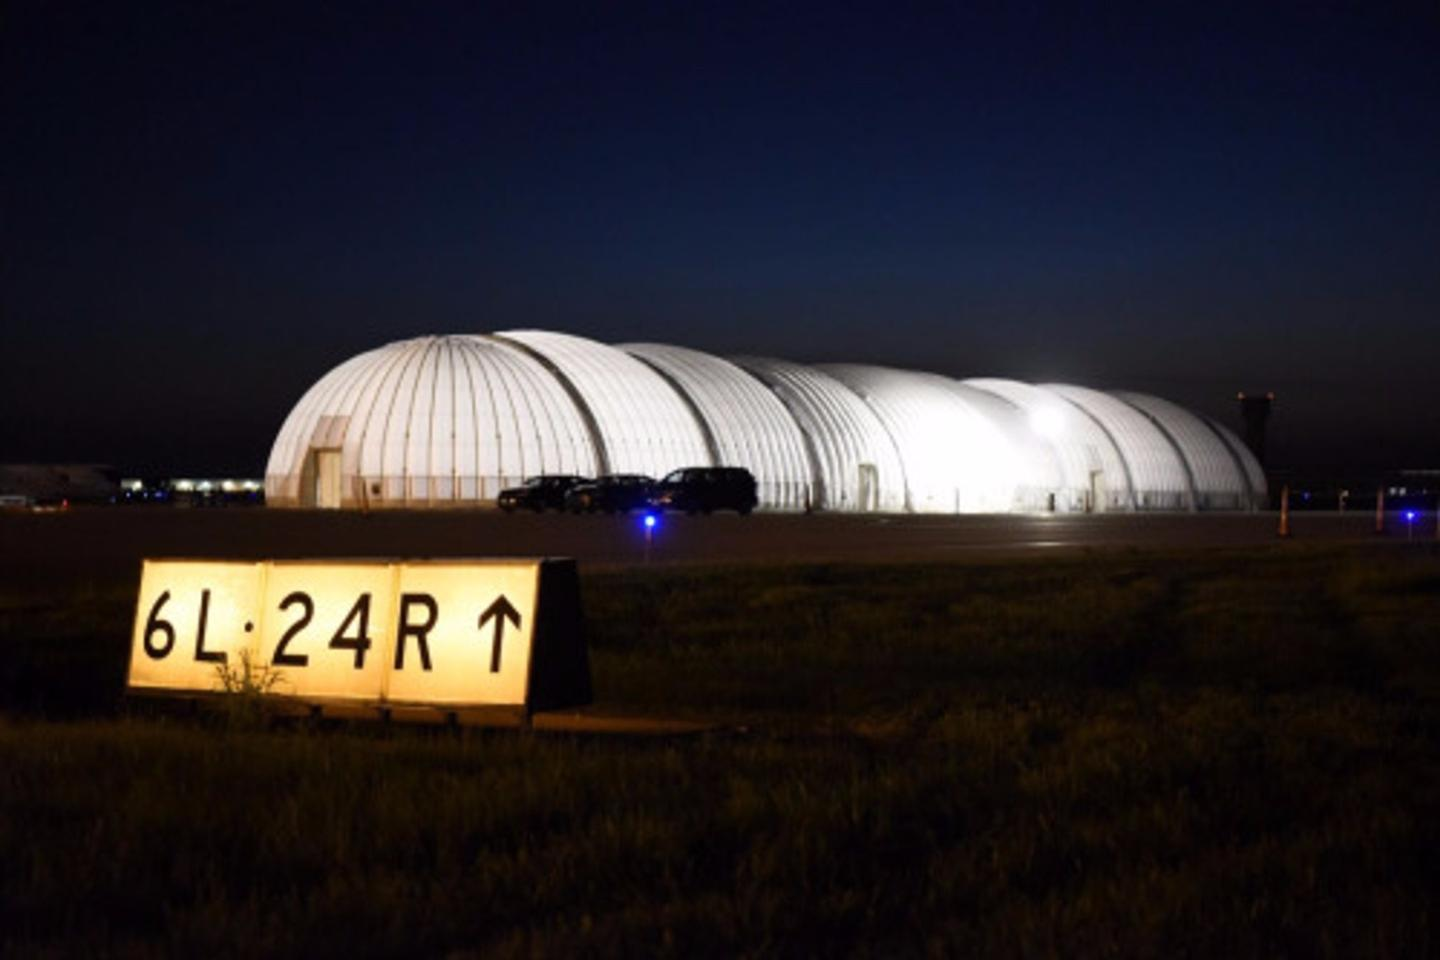 Solar Impulse 2 has been grounded temporarily after its inflatable hangar partially collapsed